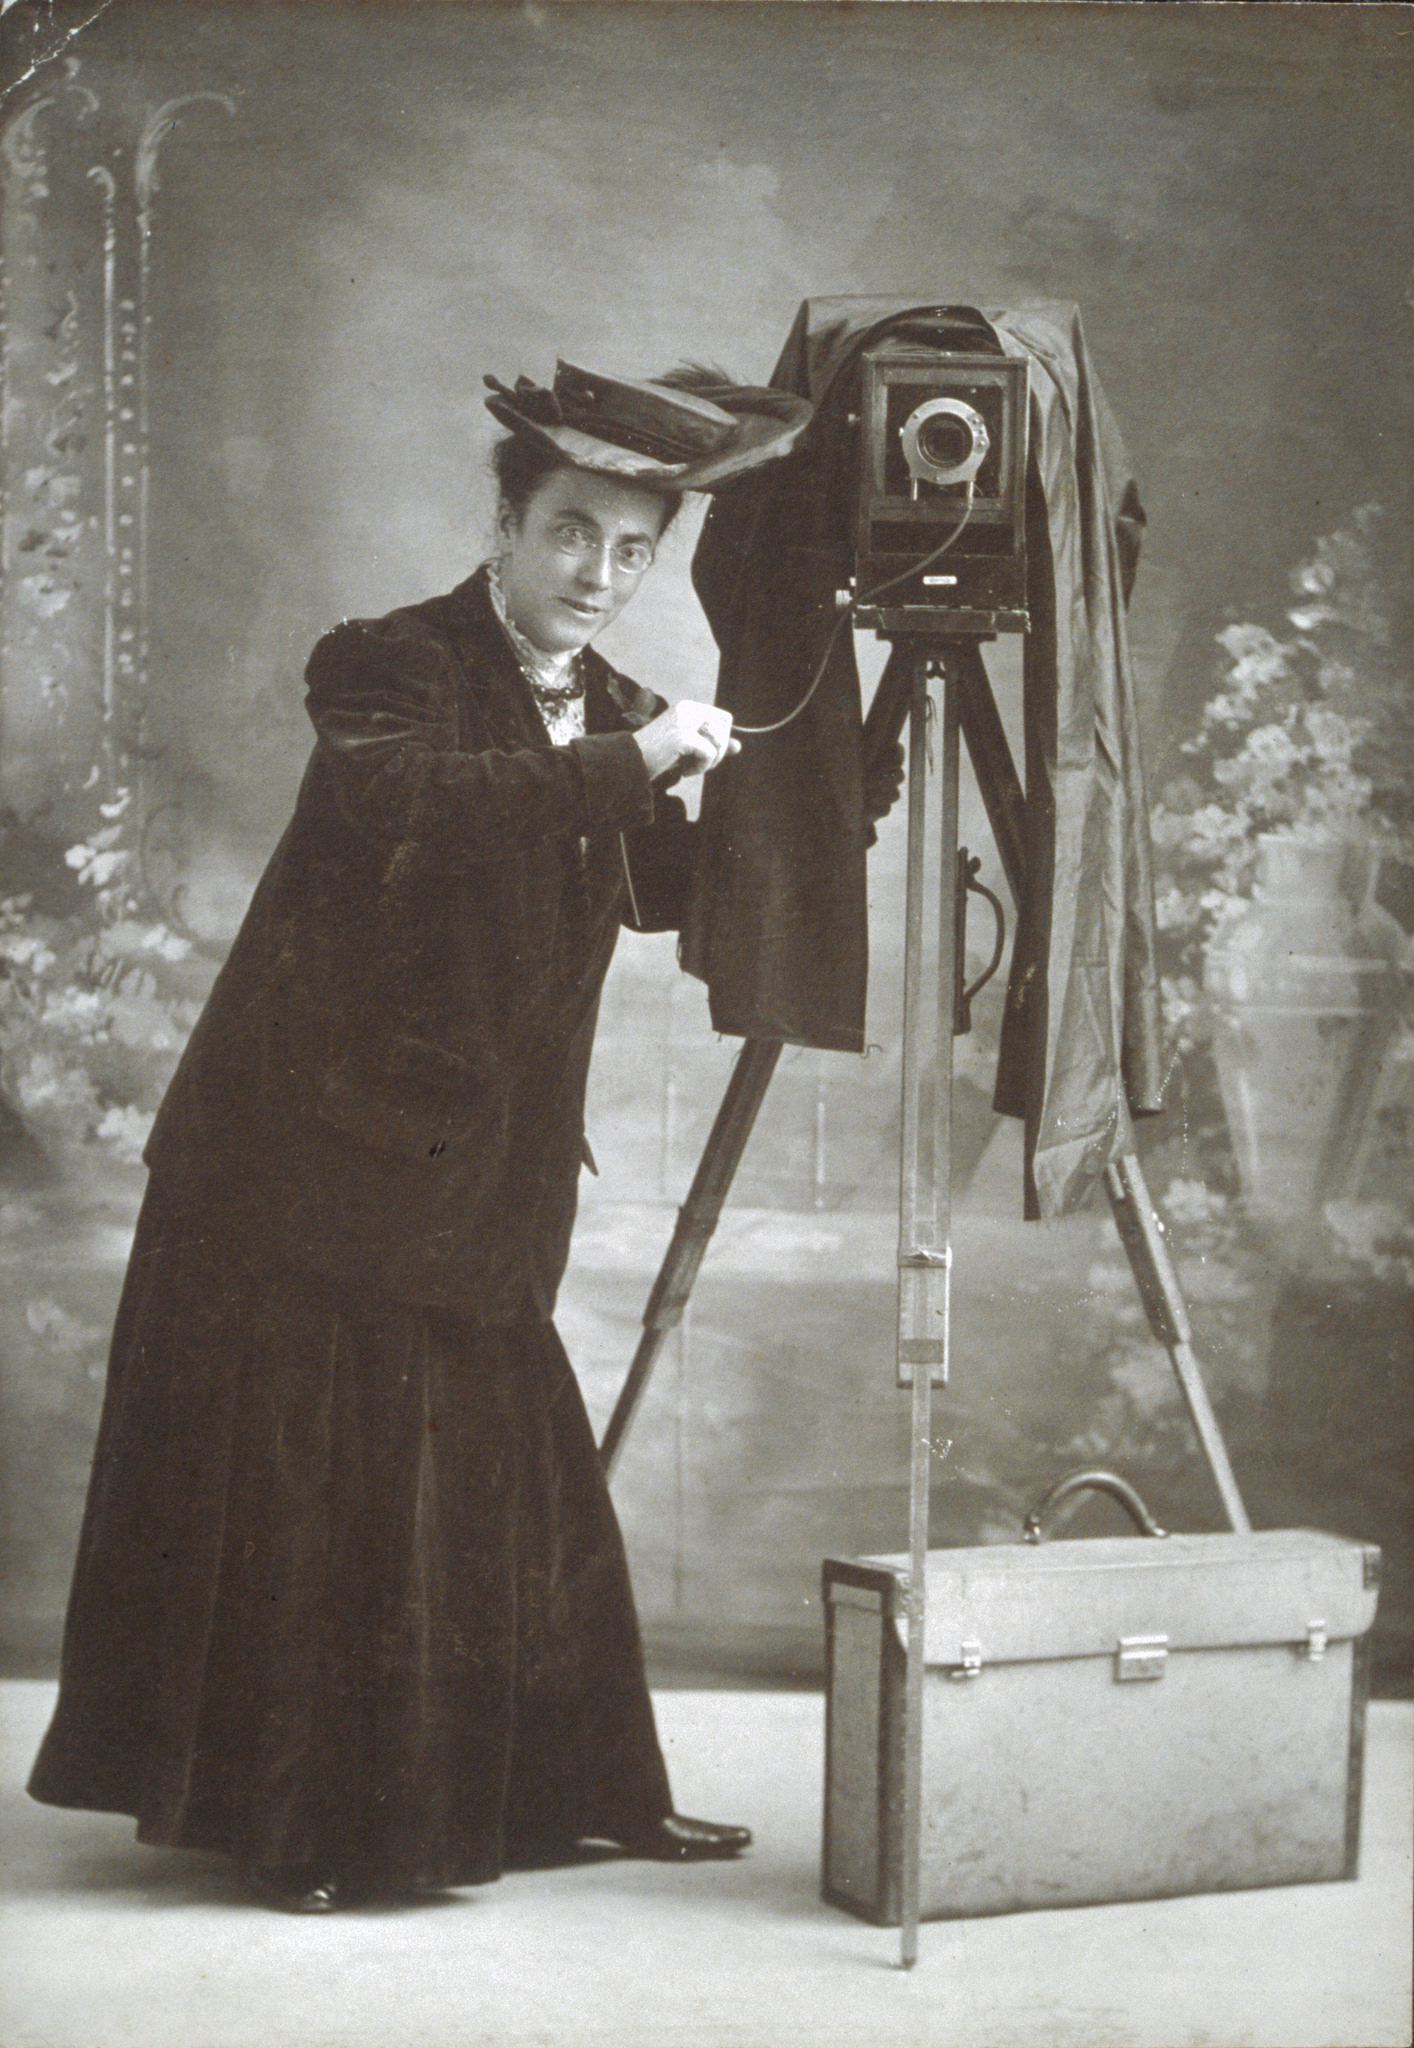 Image of Jessie Tarbox Beals from Wikidata